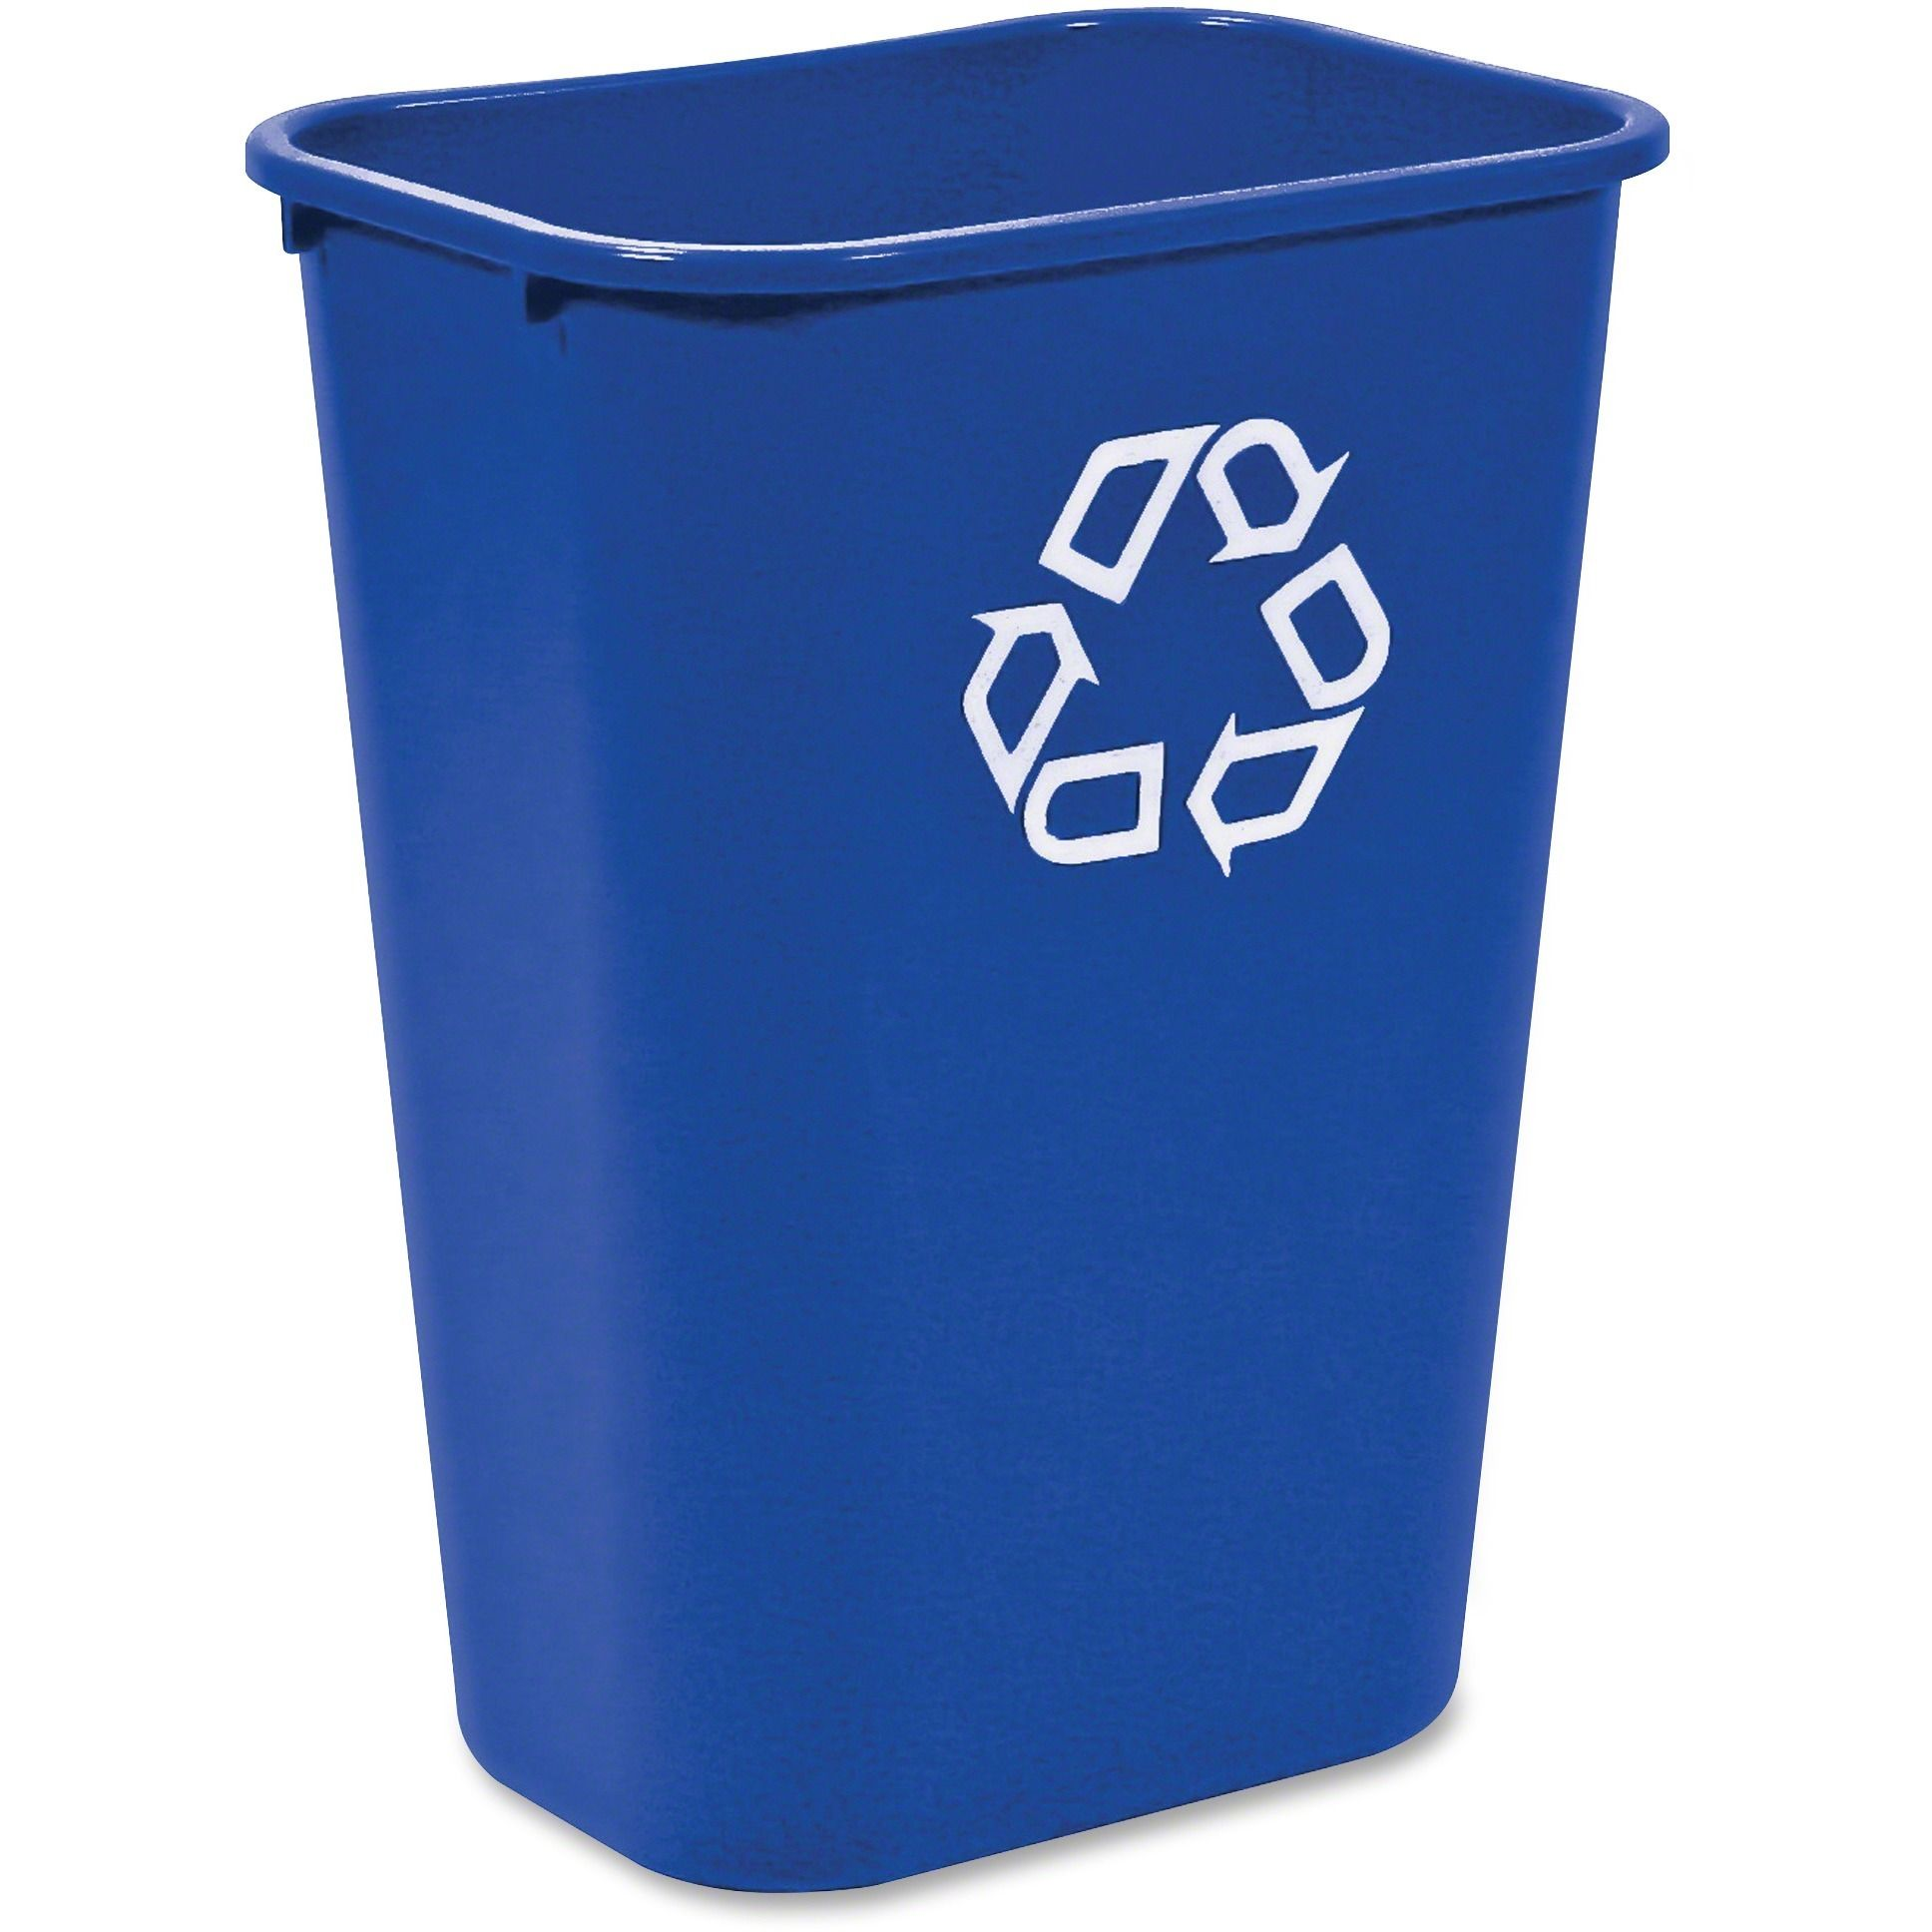 Industrial Scientific Recycling Containers Recycling Bins Recycling